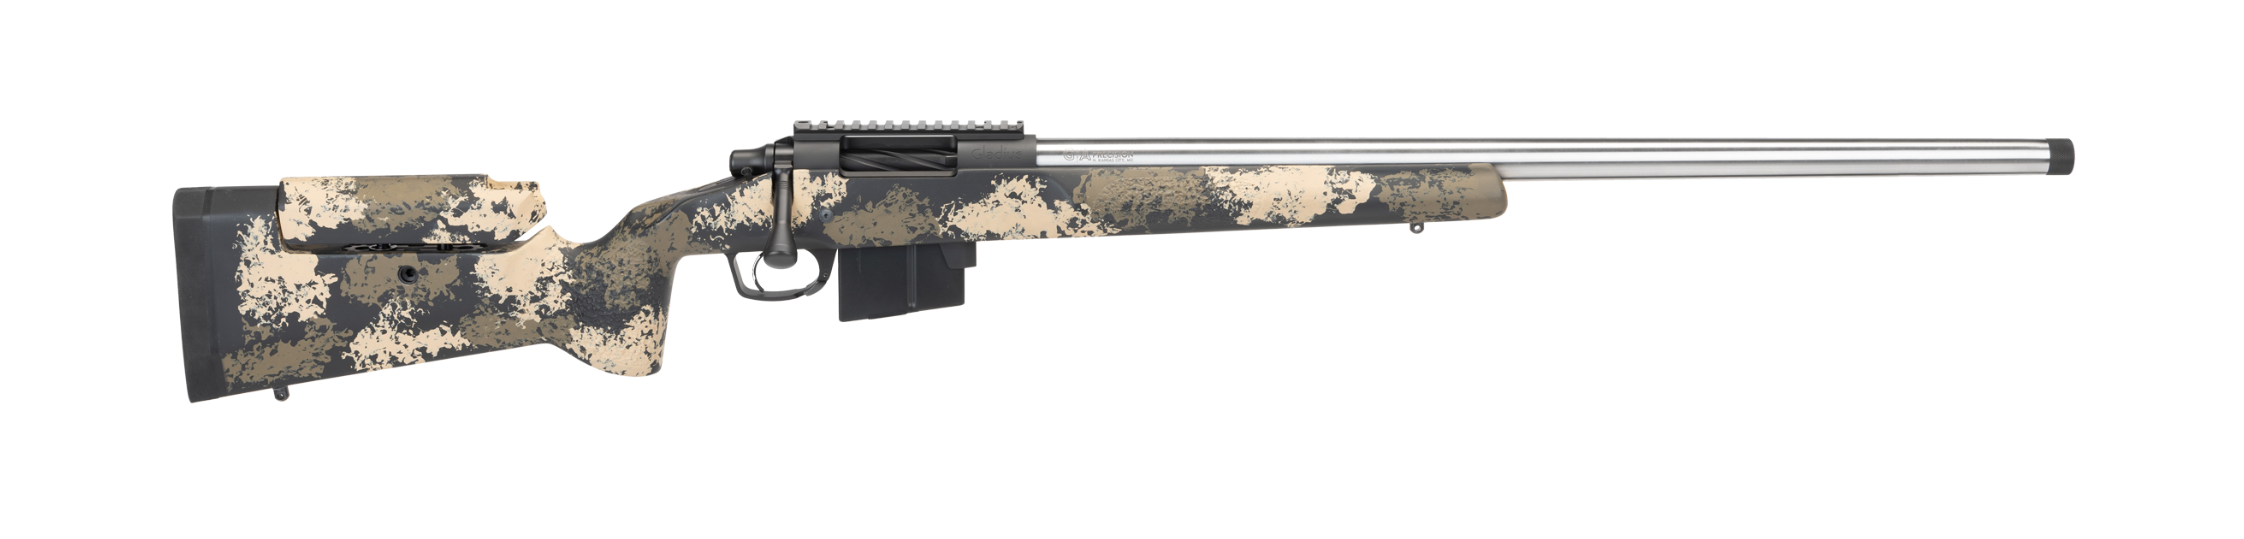 Pinnacle Production Rifle (PPR)